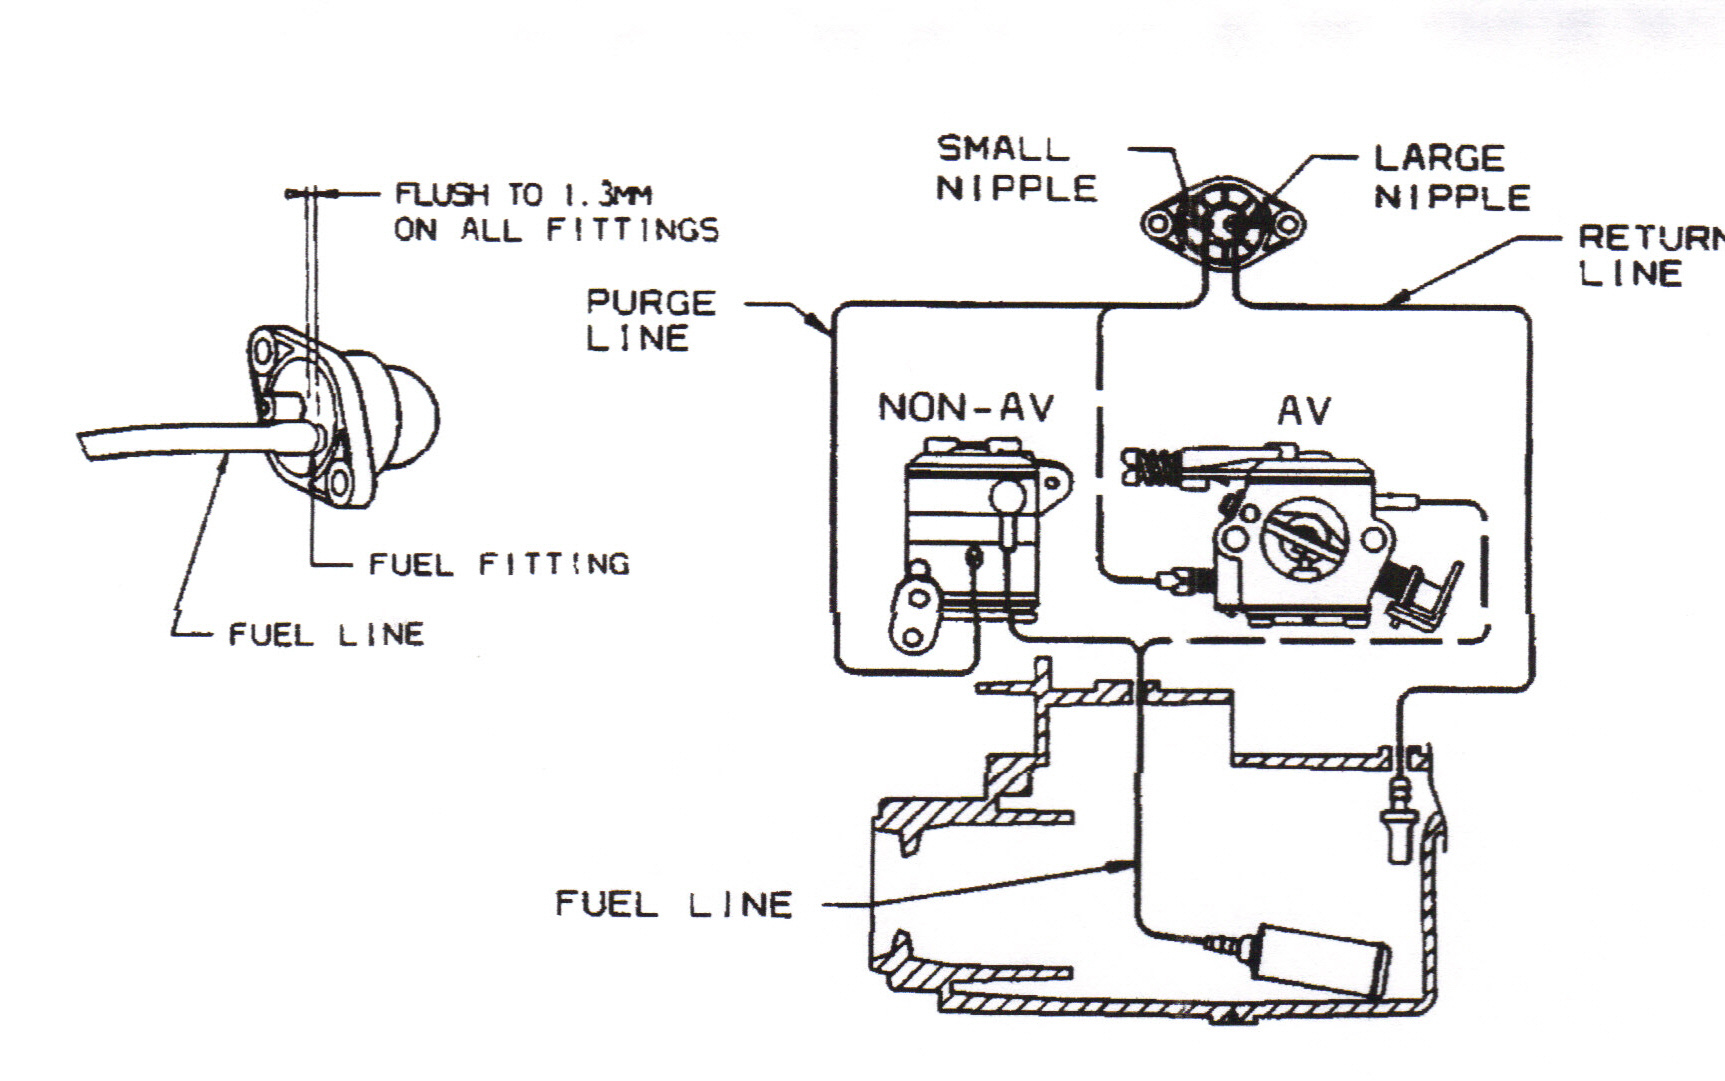 Troubleshooting Poulan Chainsaw